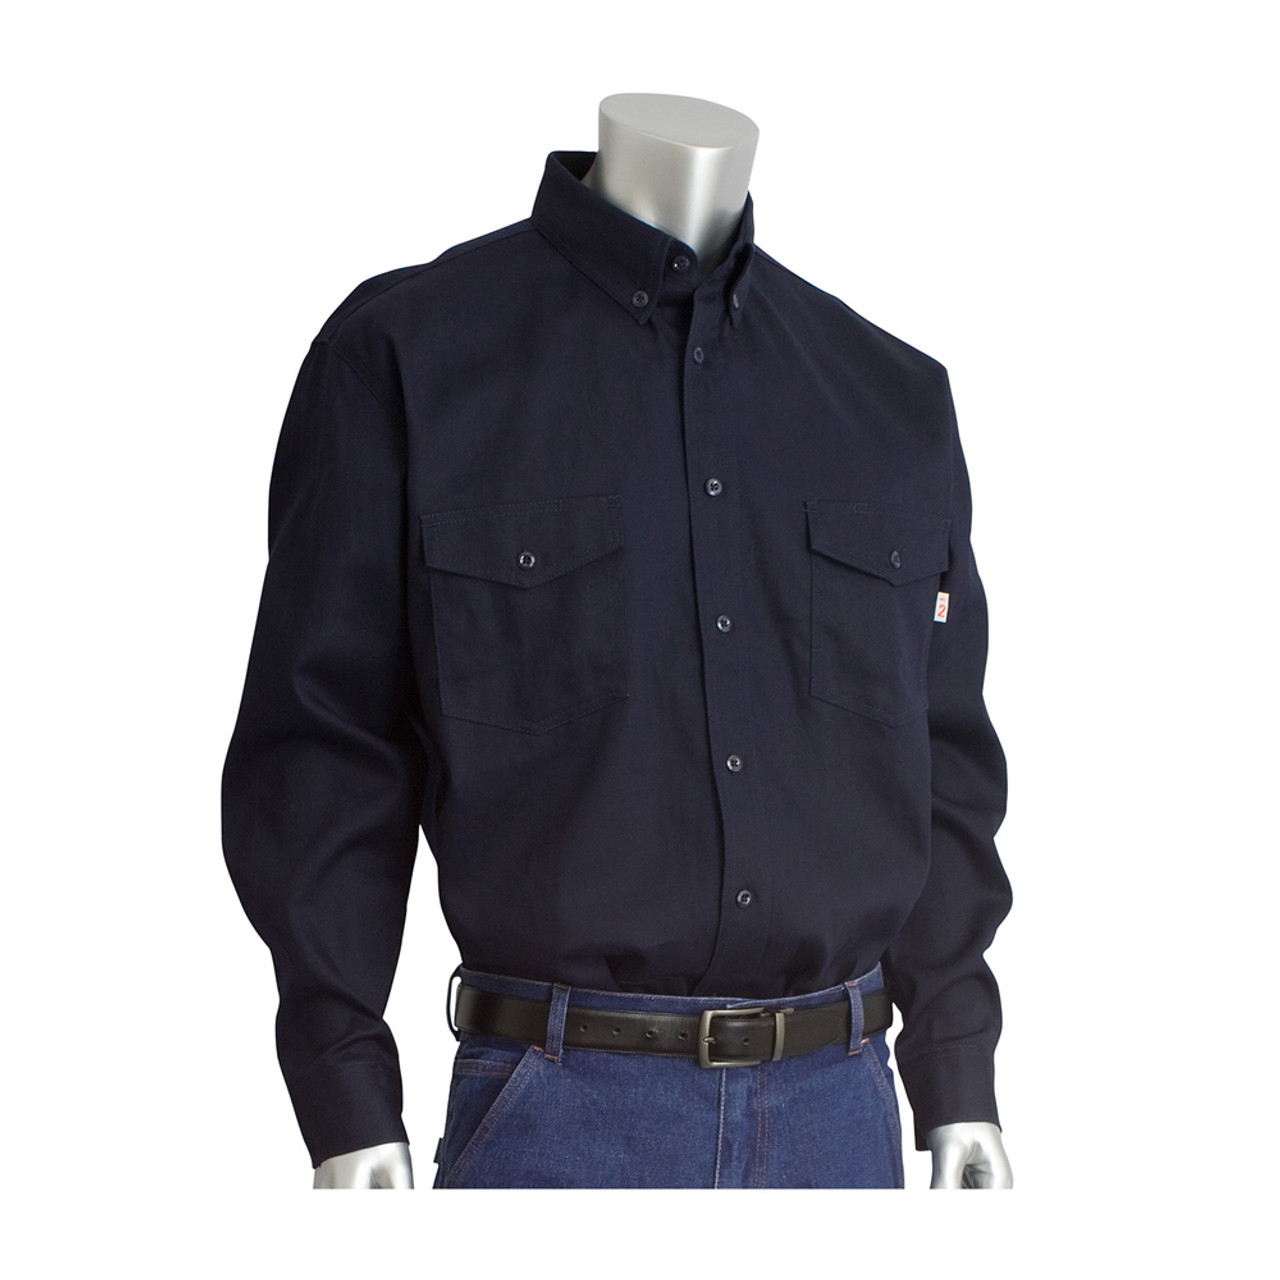 223f6567 PIP Flame Resistant HRC 2 Button Dress Work Shirt - Navy blue long sleeve  collared button